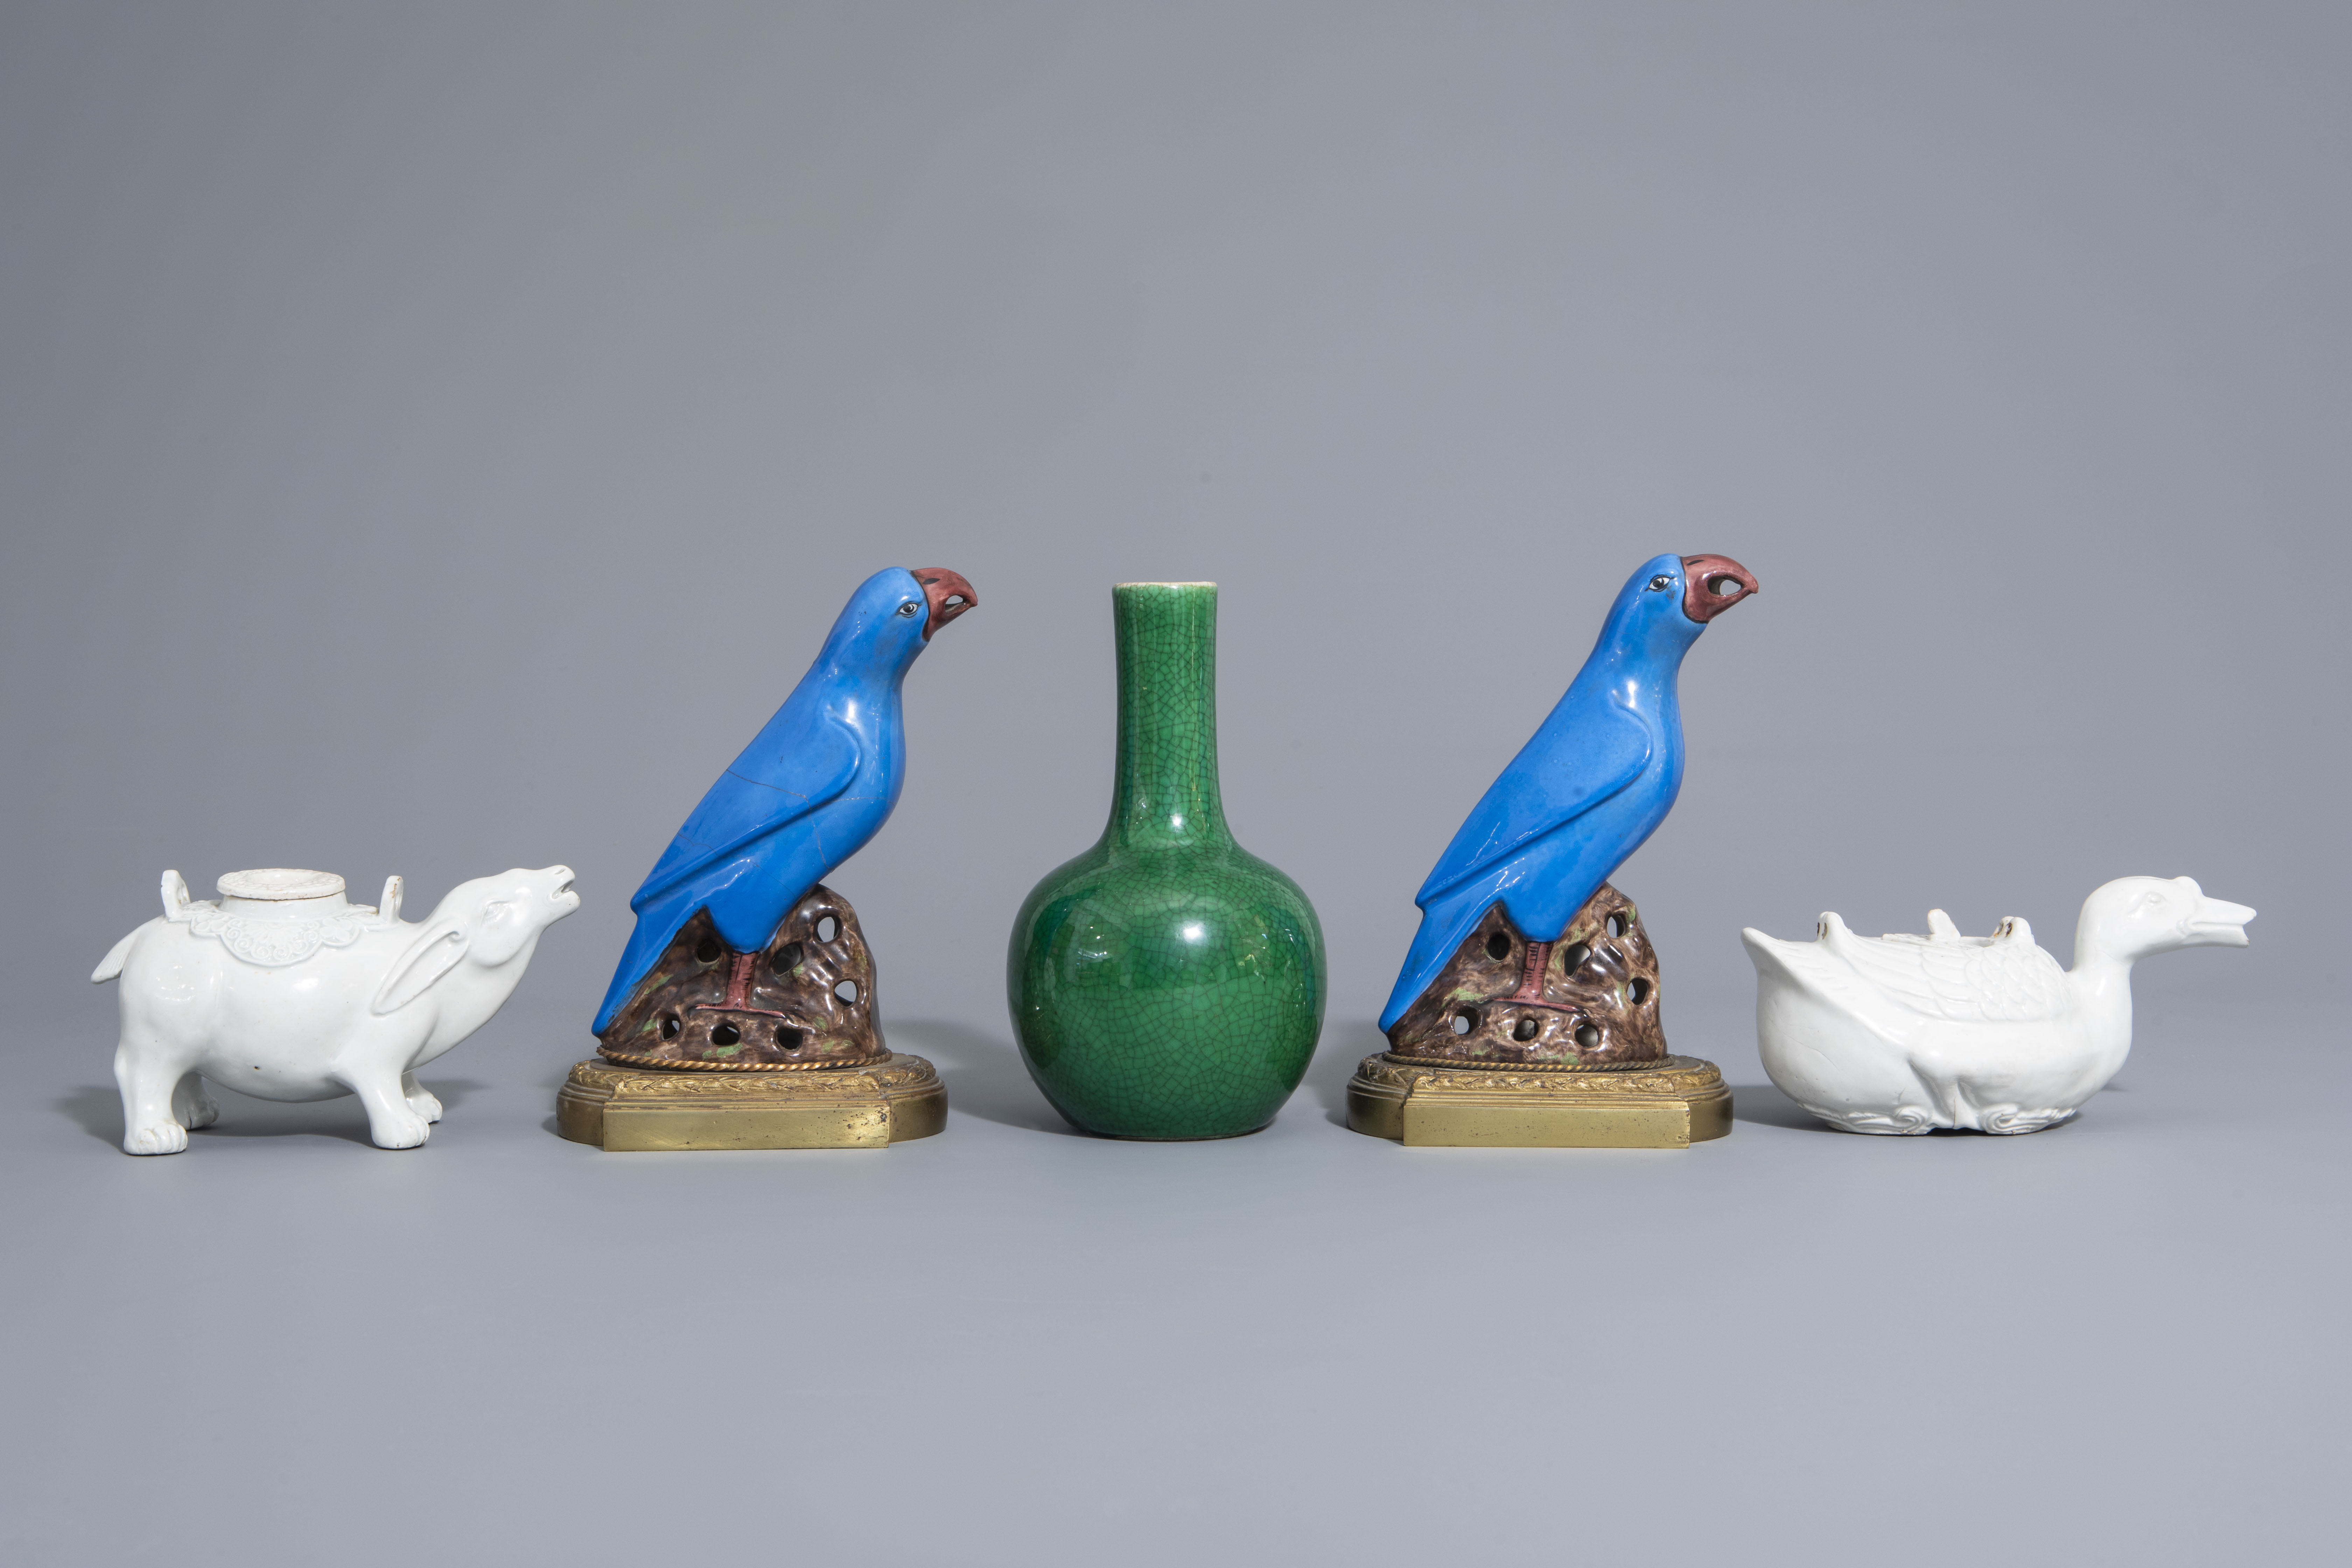 A Chinese monochrome green vase, 2 blanc de Chine teapots & a pair of polychrome birds, 19th/20th C - Image 2 of 7